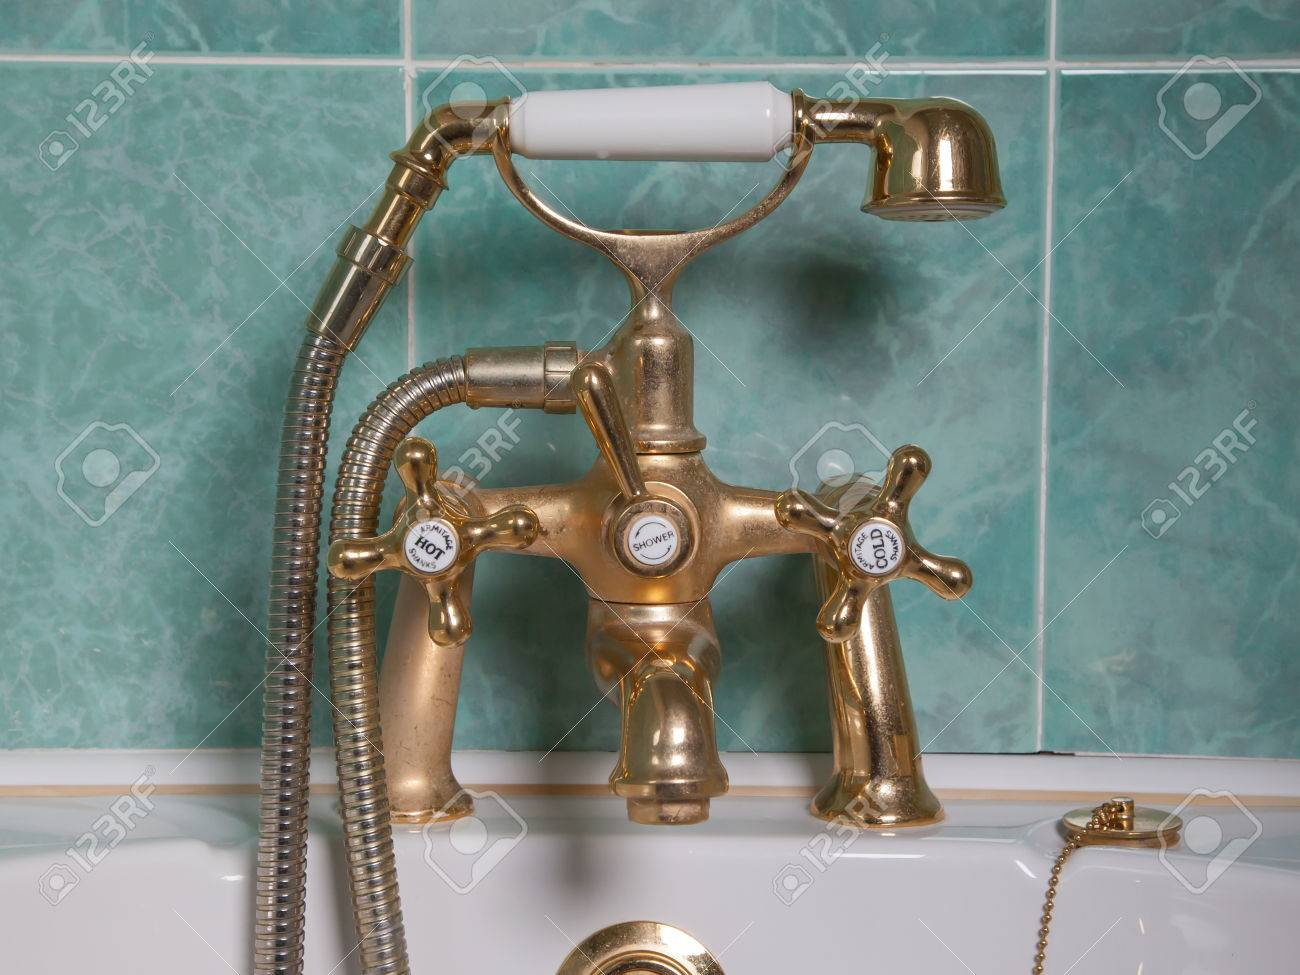 Modern Vintage Bath Taps Pattern - Bathroom with Bathtub Ideas ...